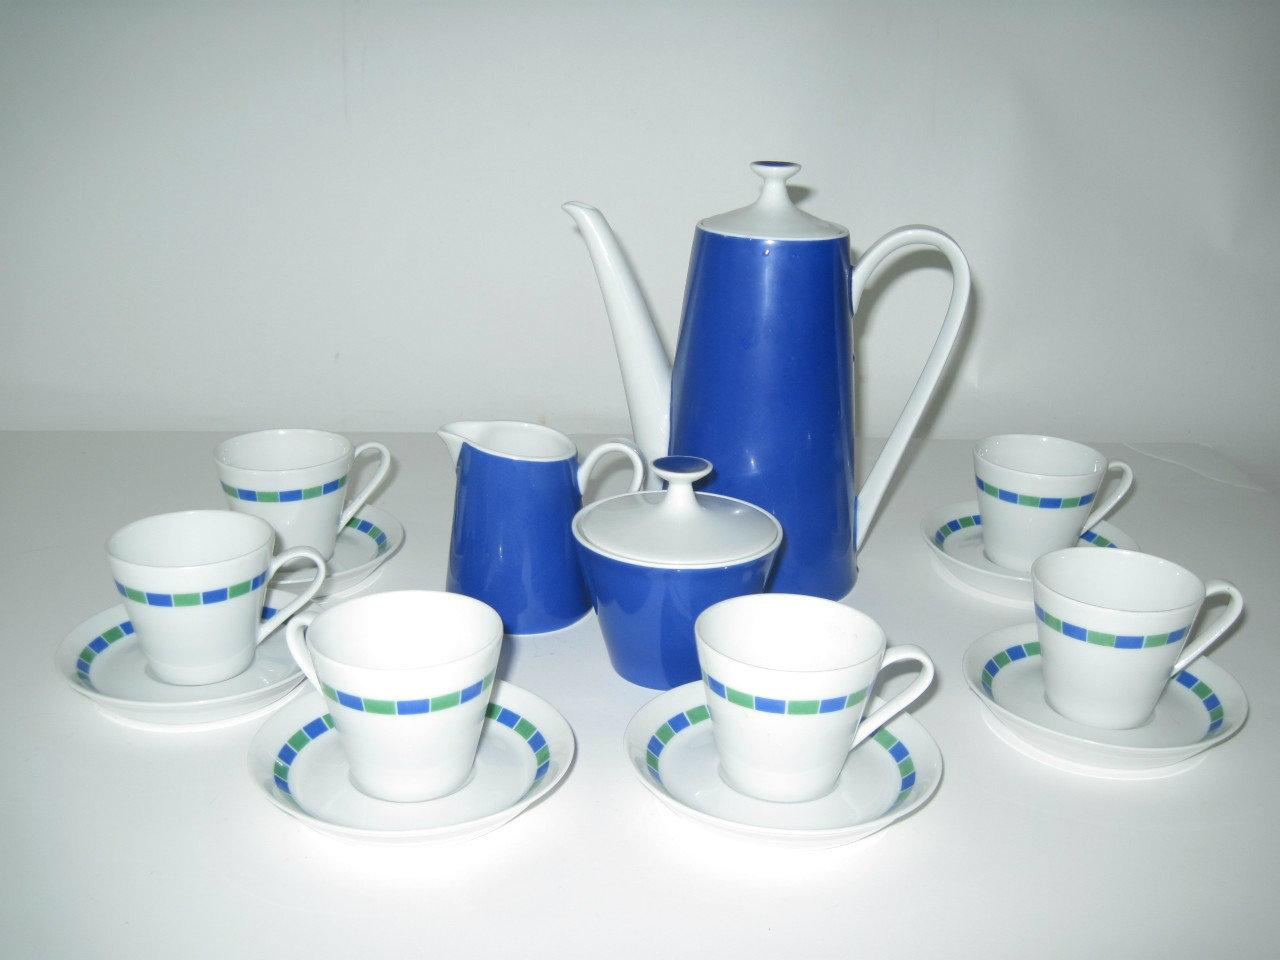 Fairwood China Mid-Century Modern Tea Set- Schonwald Germany - Image 2 of 7  sc 1 st  Chairish & Fairwood China Mid-Century Modern Tea Set- Schonwald Germany | Chairish